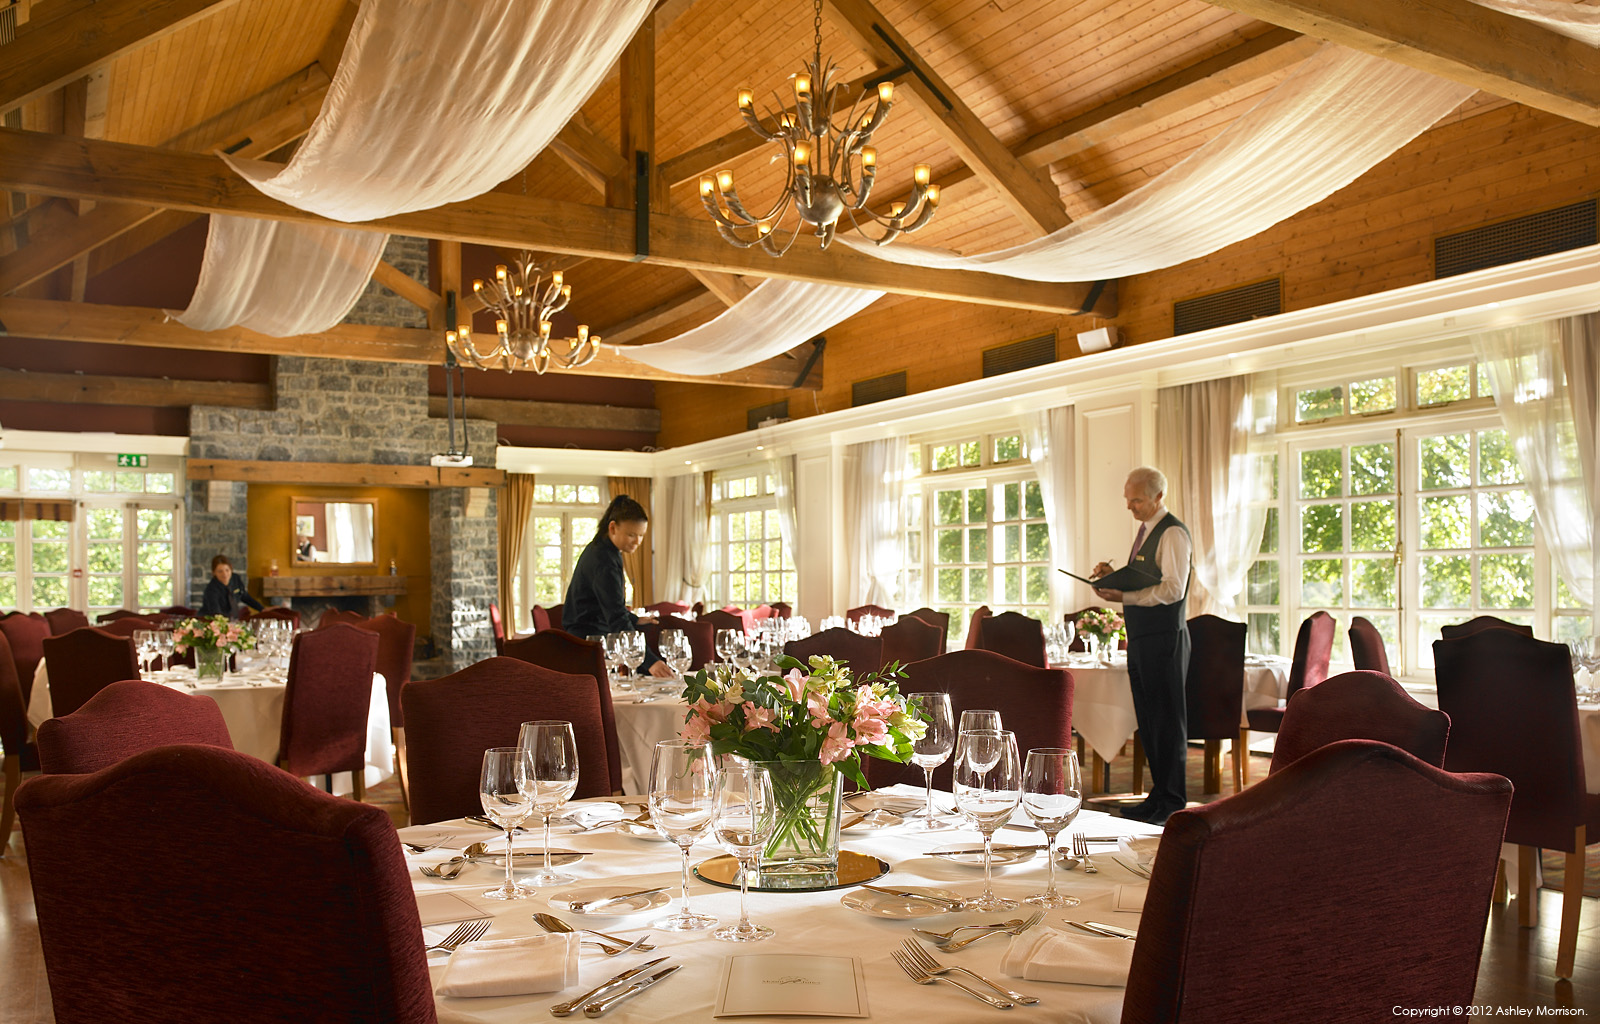 Kendals restaurant in the Clubhouse at Mount Juliet Country Estate in County Kilkenny by Ashley Morrison.